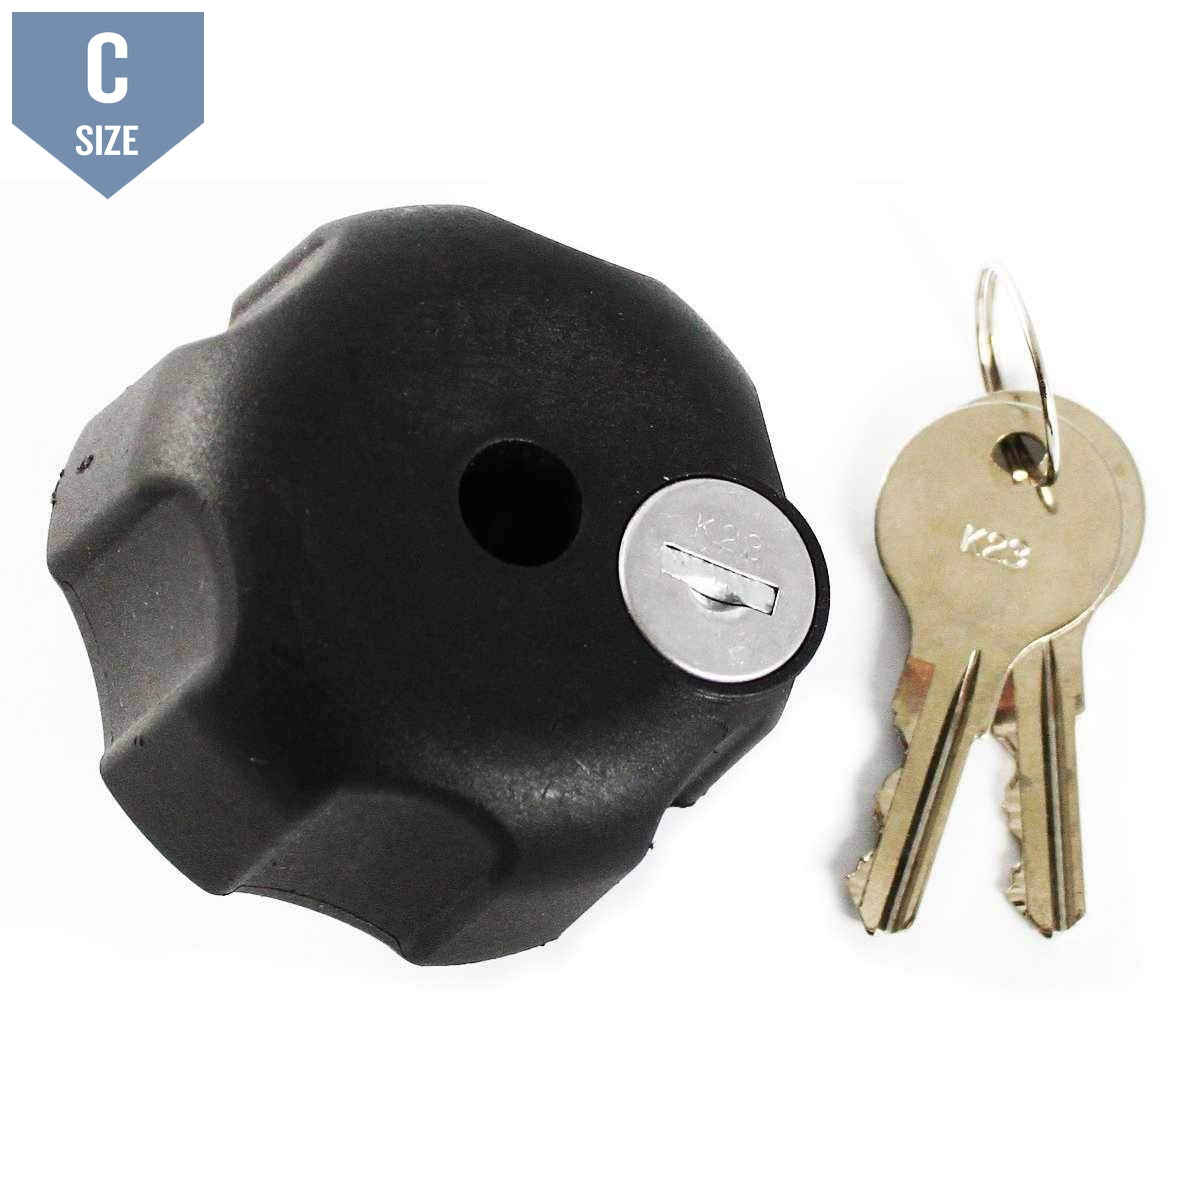 RAM Locking Knob for C Size Arm Clamps (RAM-KNOB5LU) - Modest Mounts